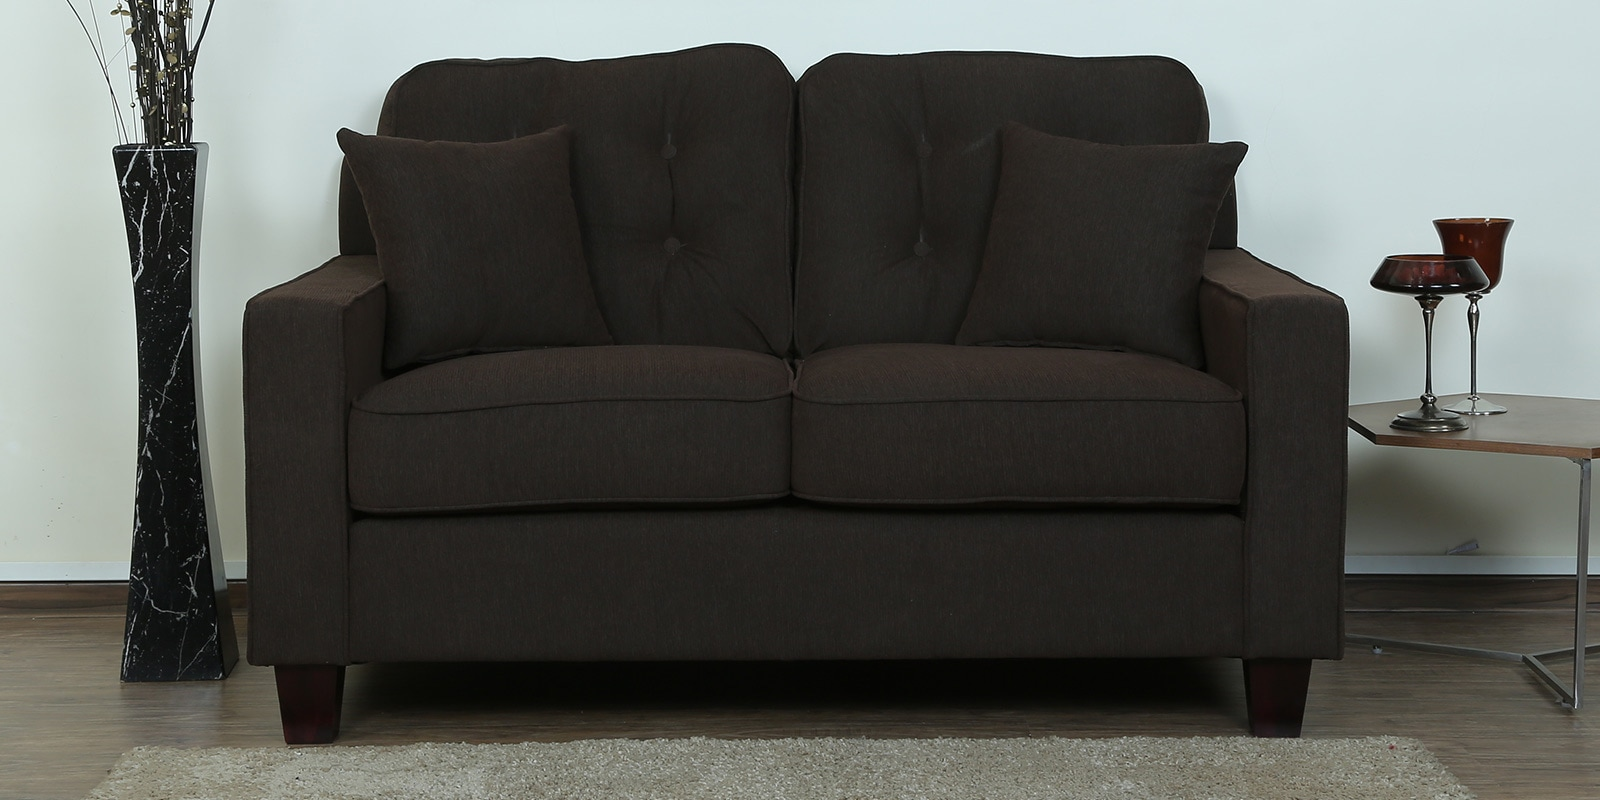 Buy Rosario 2 Seater Sofa in Chestnut Brown Colour by ...